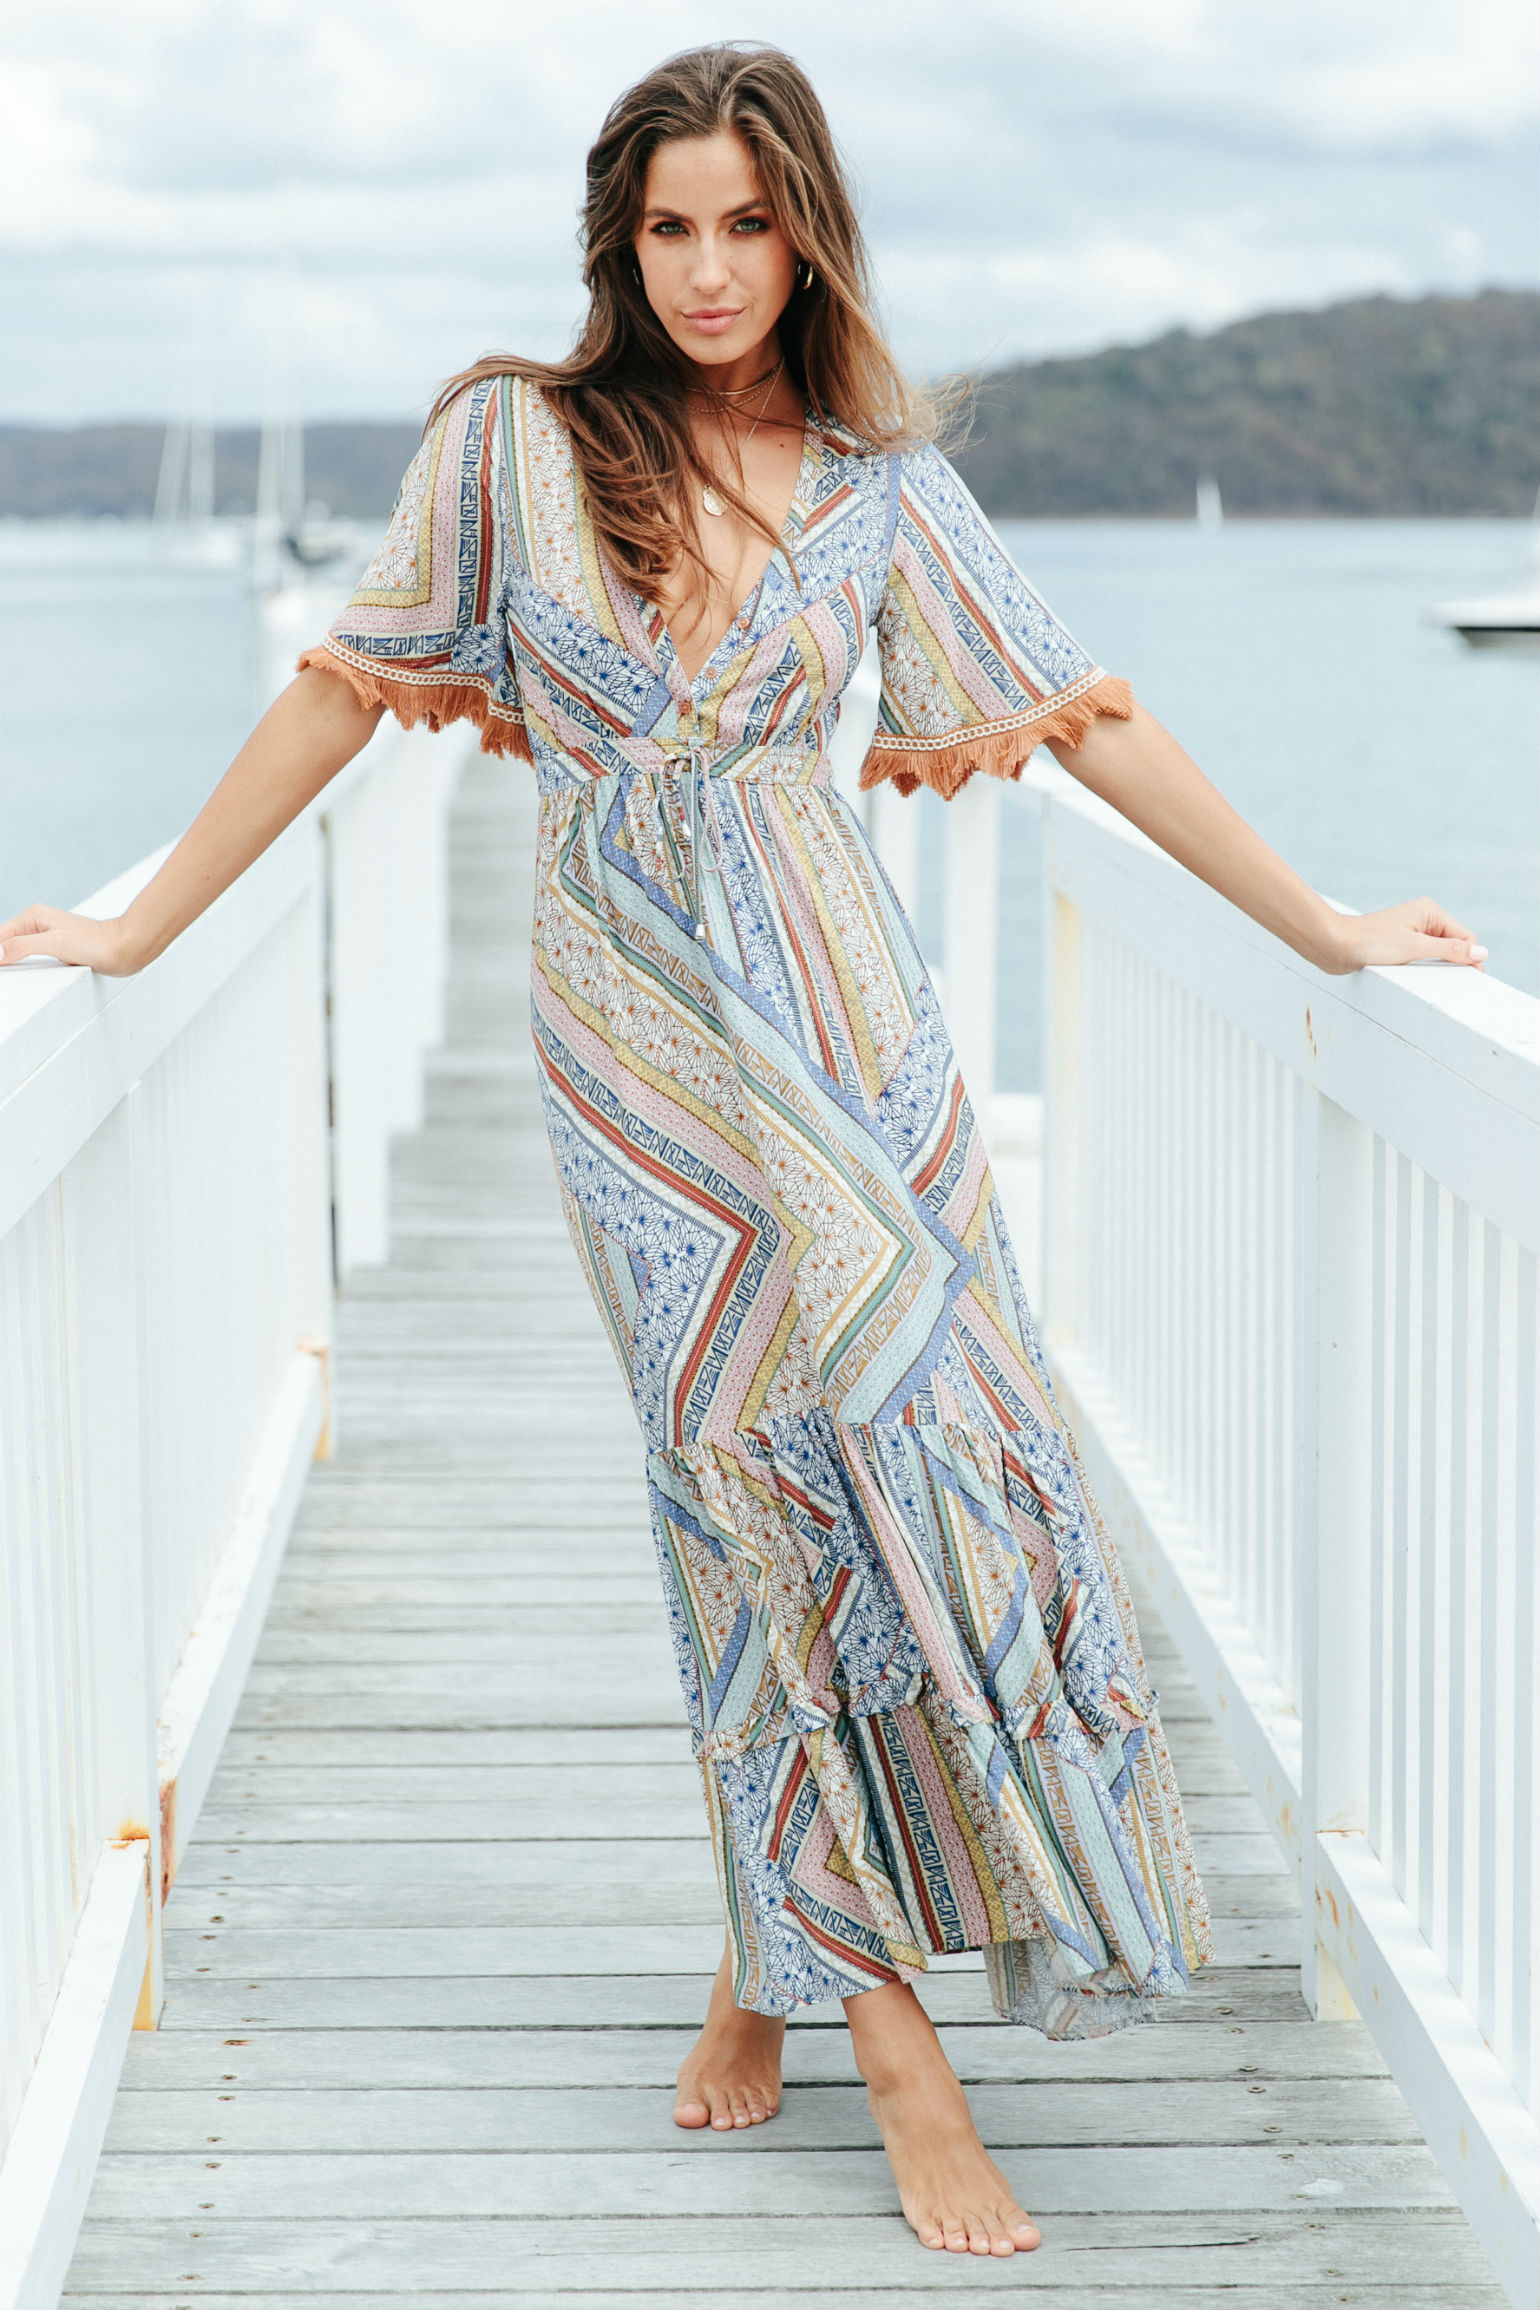 Jaase Ashland Maxi Dress